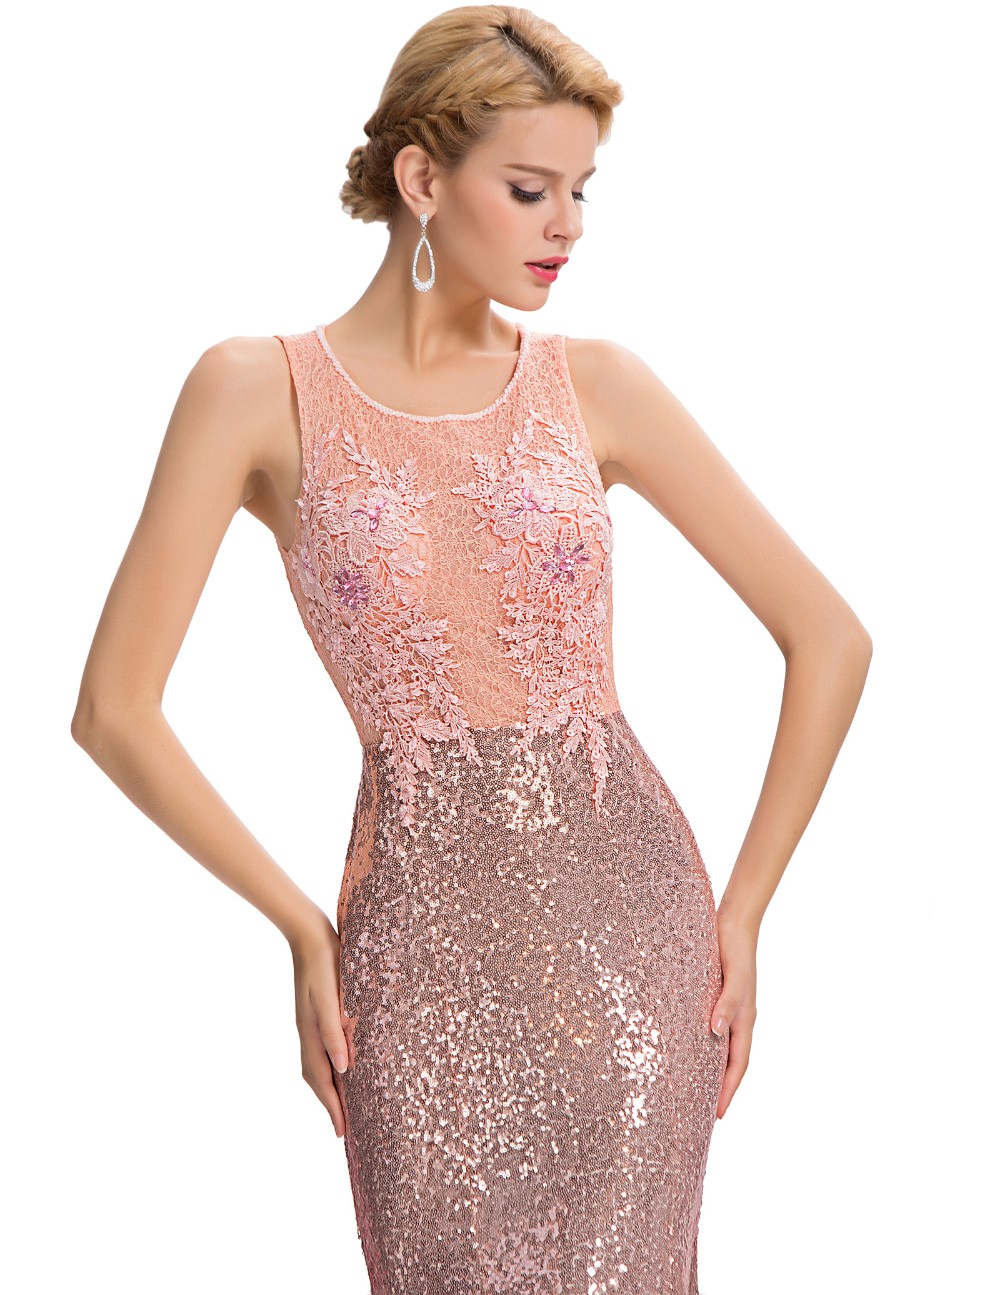 Elegant Pink Sequin Floor Length Backless Lace Mermaid Evening Dress 8